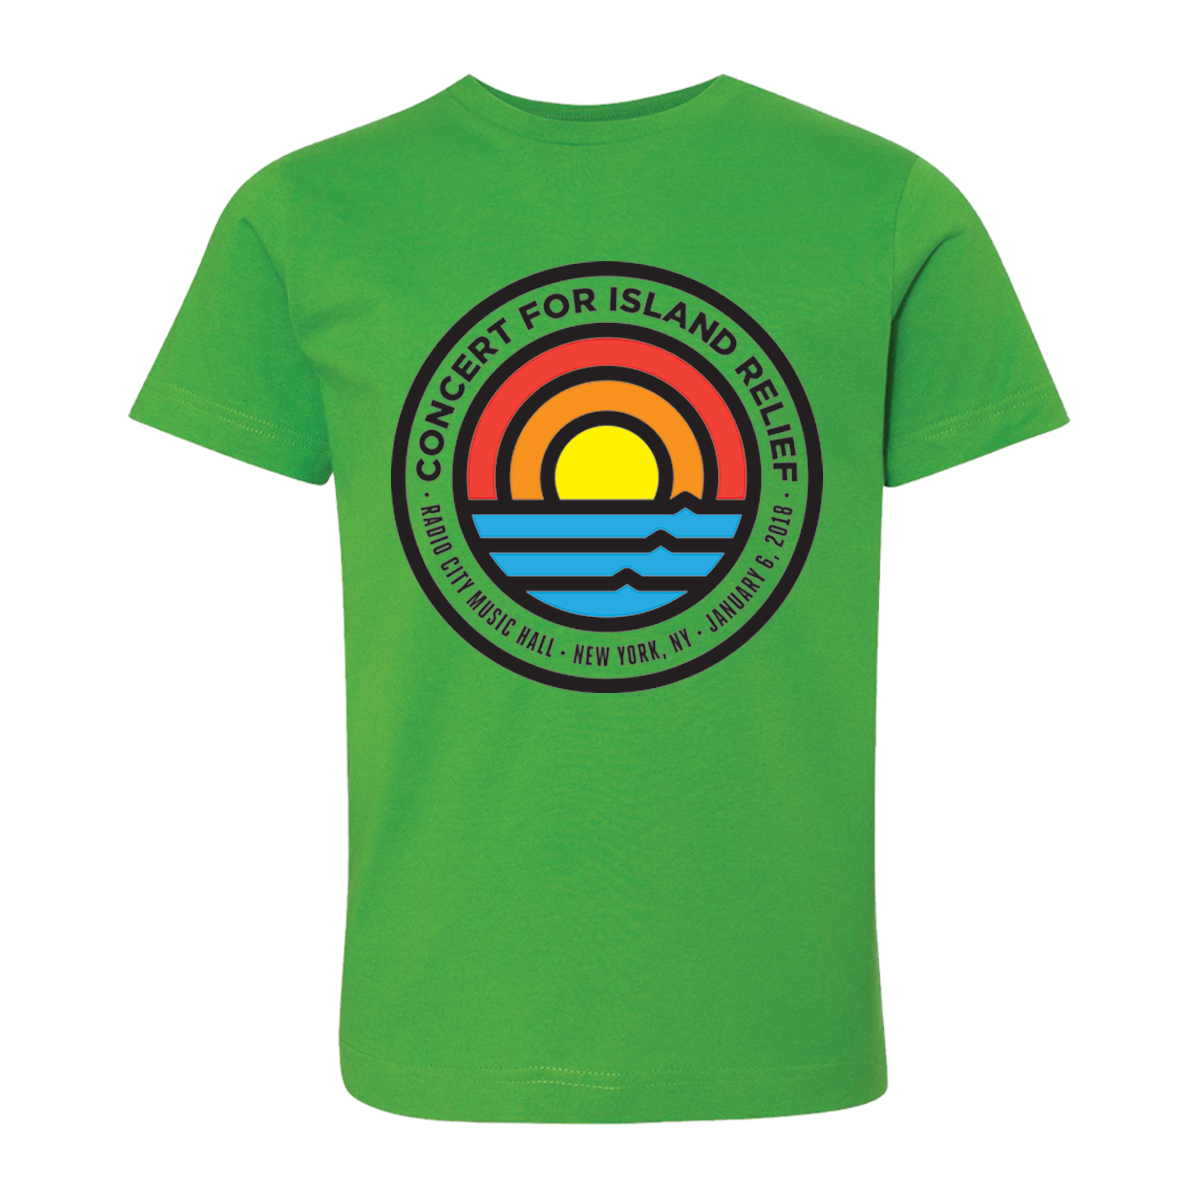 Concert for Island Relief Kid's Rainbow T-Shirt